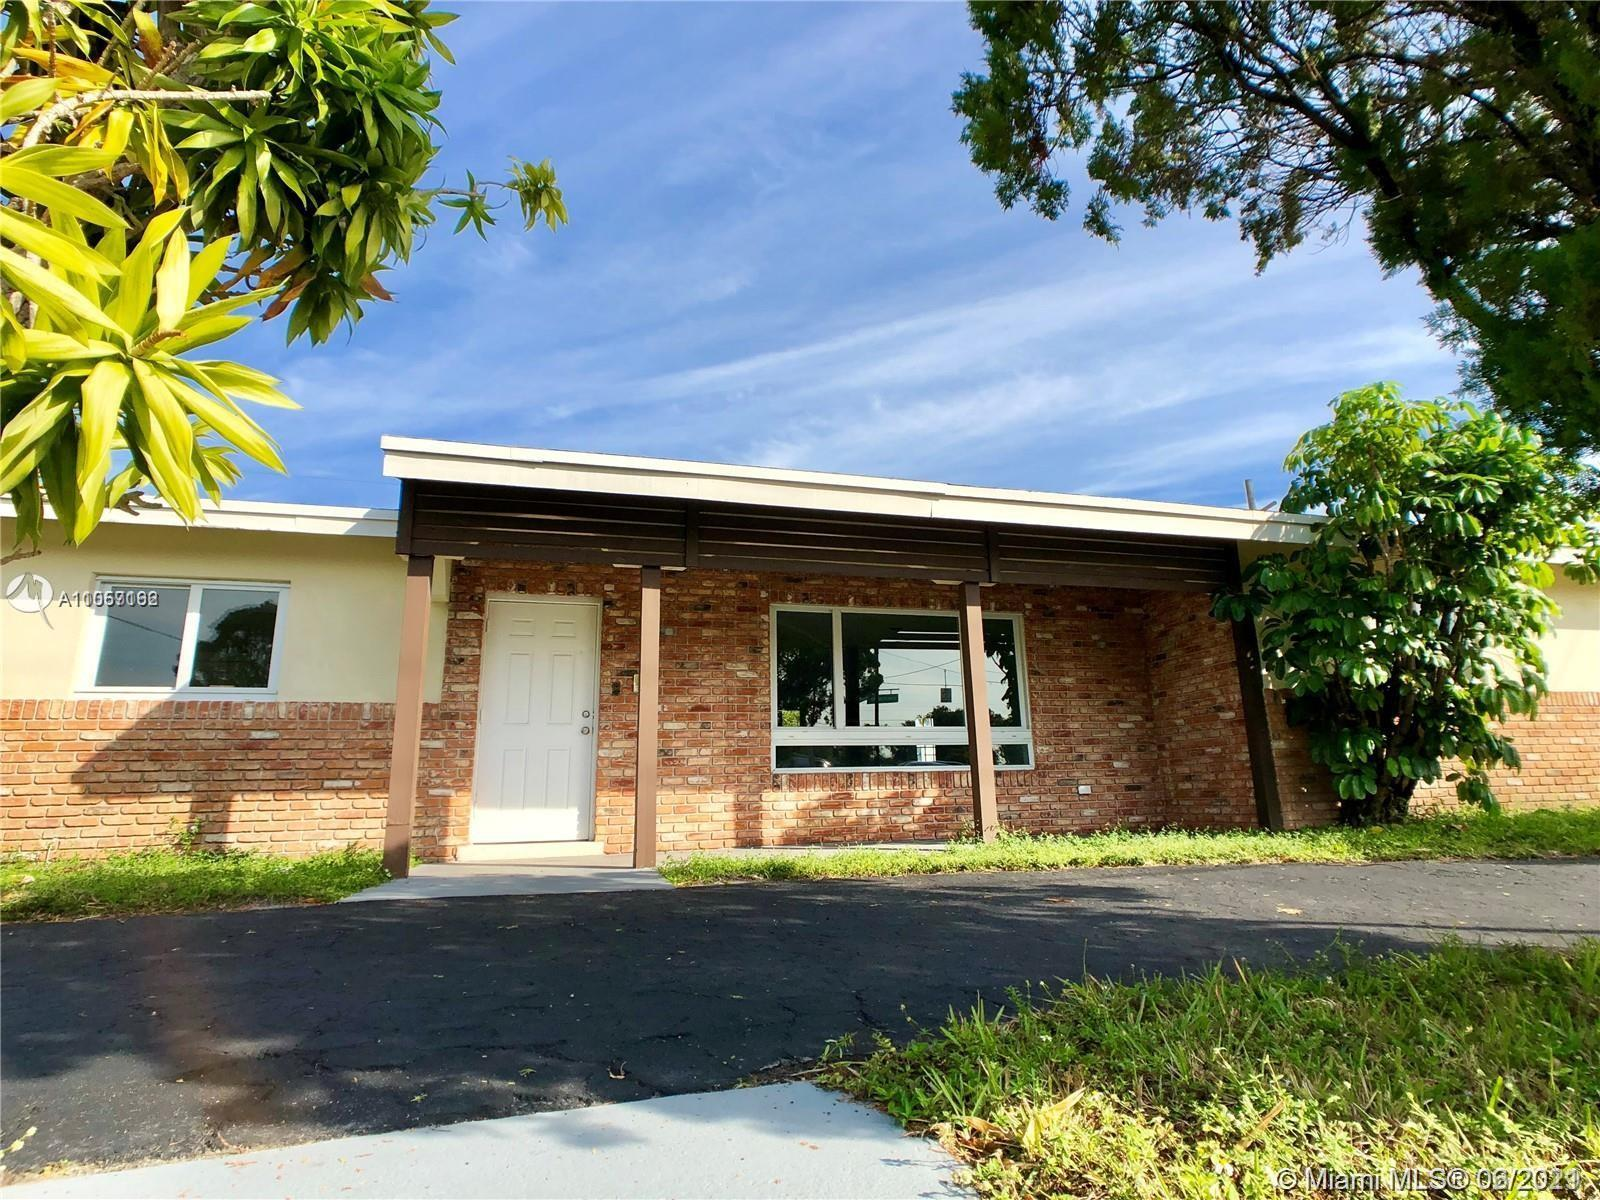 Fully renovated 3 bed, 2 bath home in corner lot in Wilton Manors. Spacious and bright! 36' x 36' ti